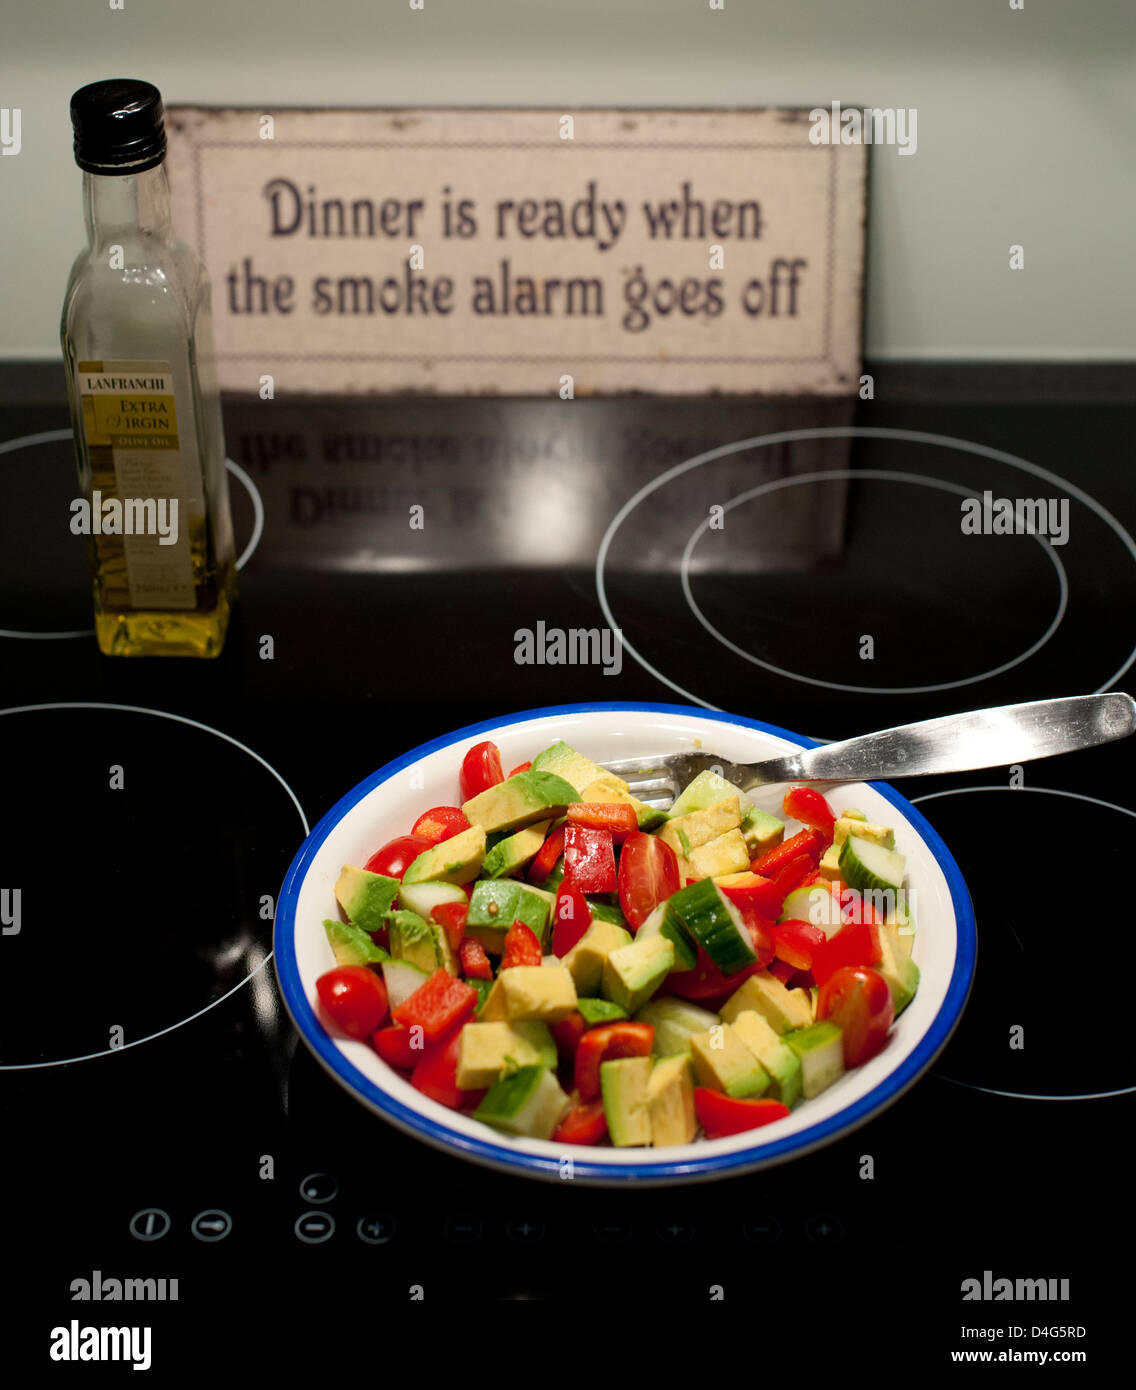 Healthy salad on a plate on a ceramic stove with a bottle of olive oil and a sign in the background - Stock Image